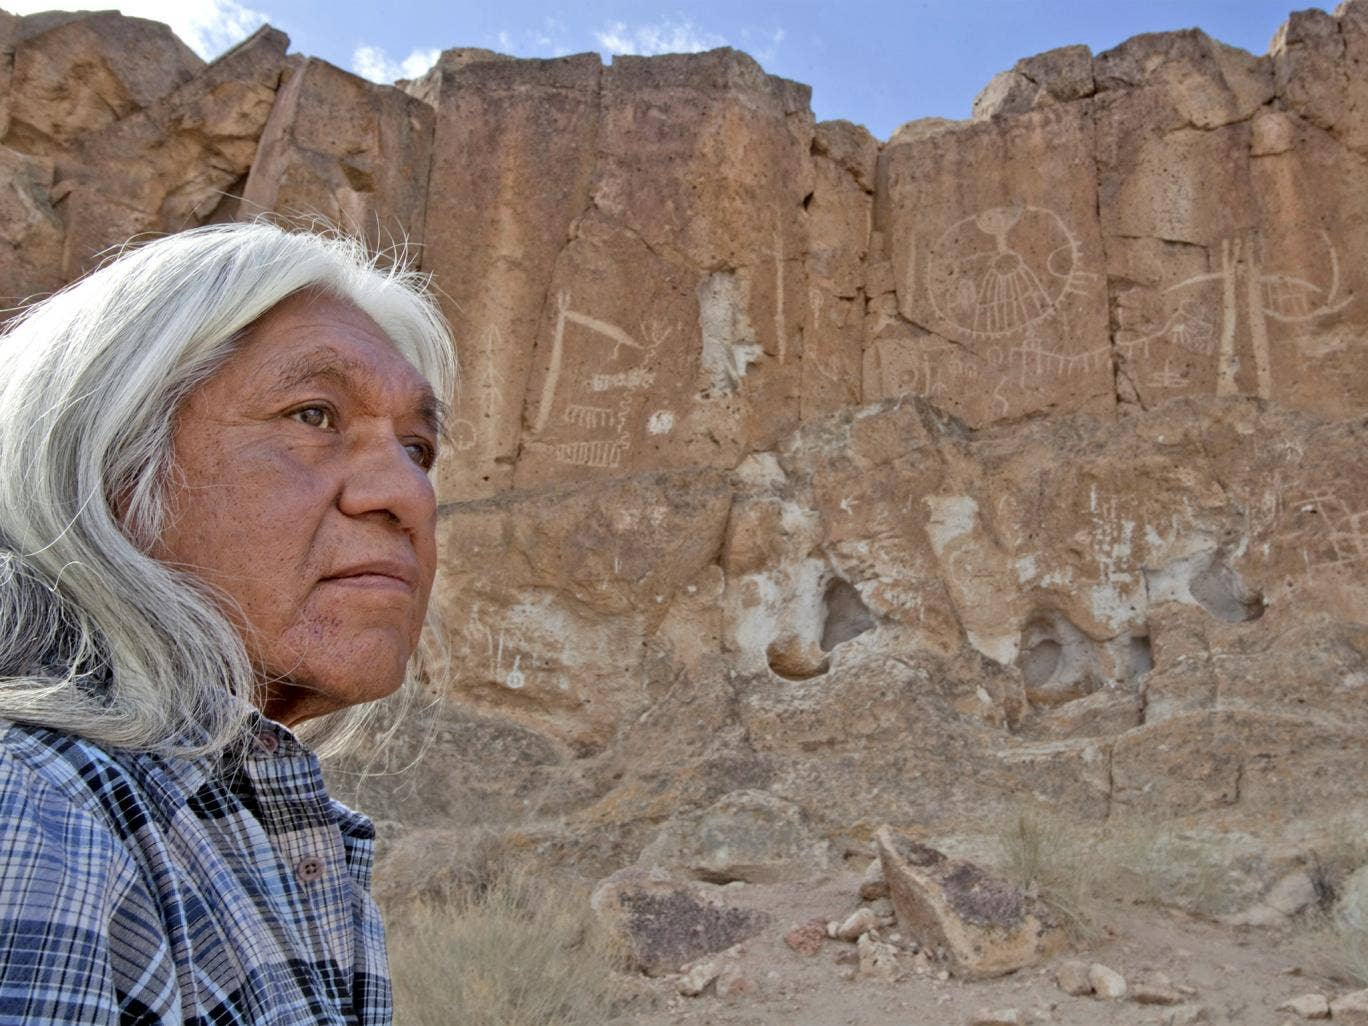 Raymond Andrews, the local tribal historical preservation officer, examines the damage